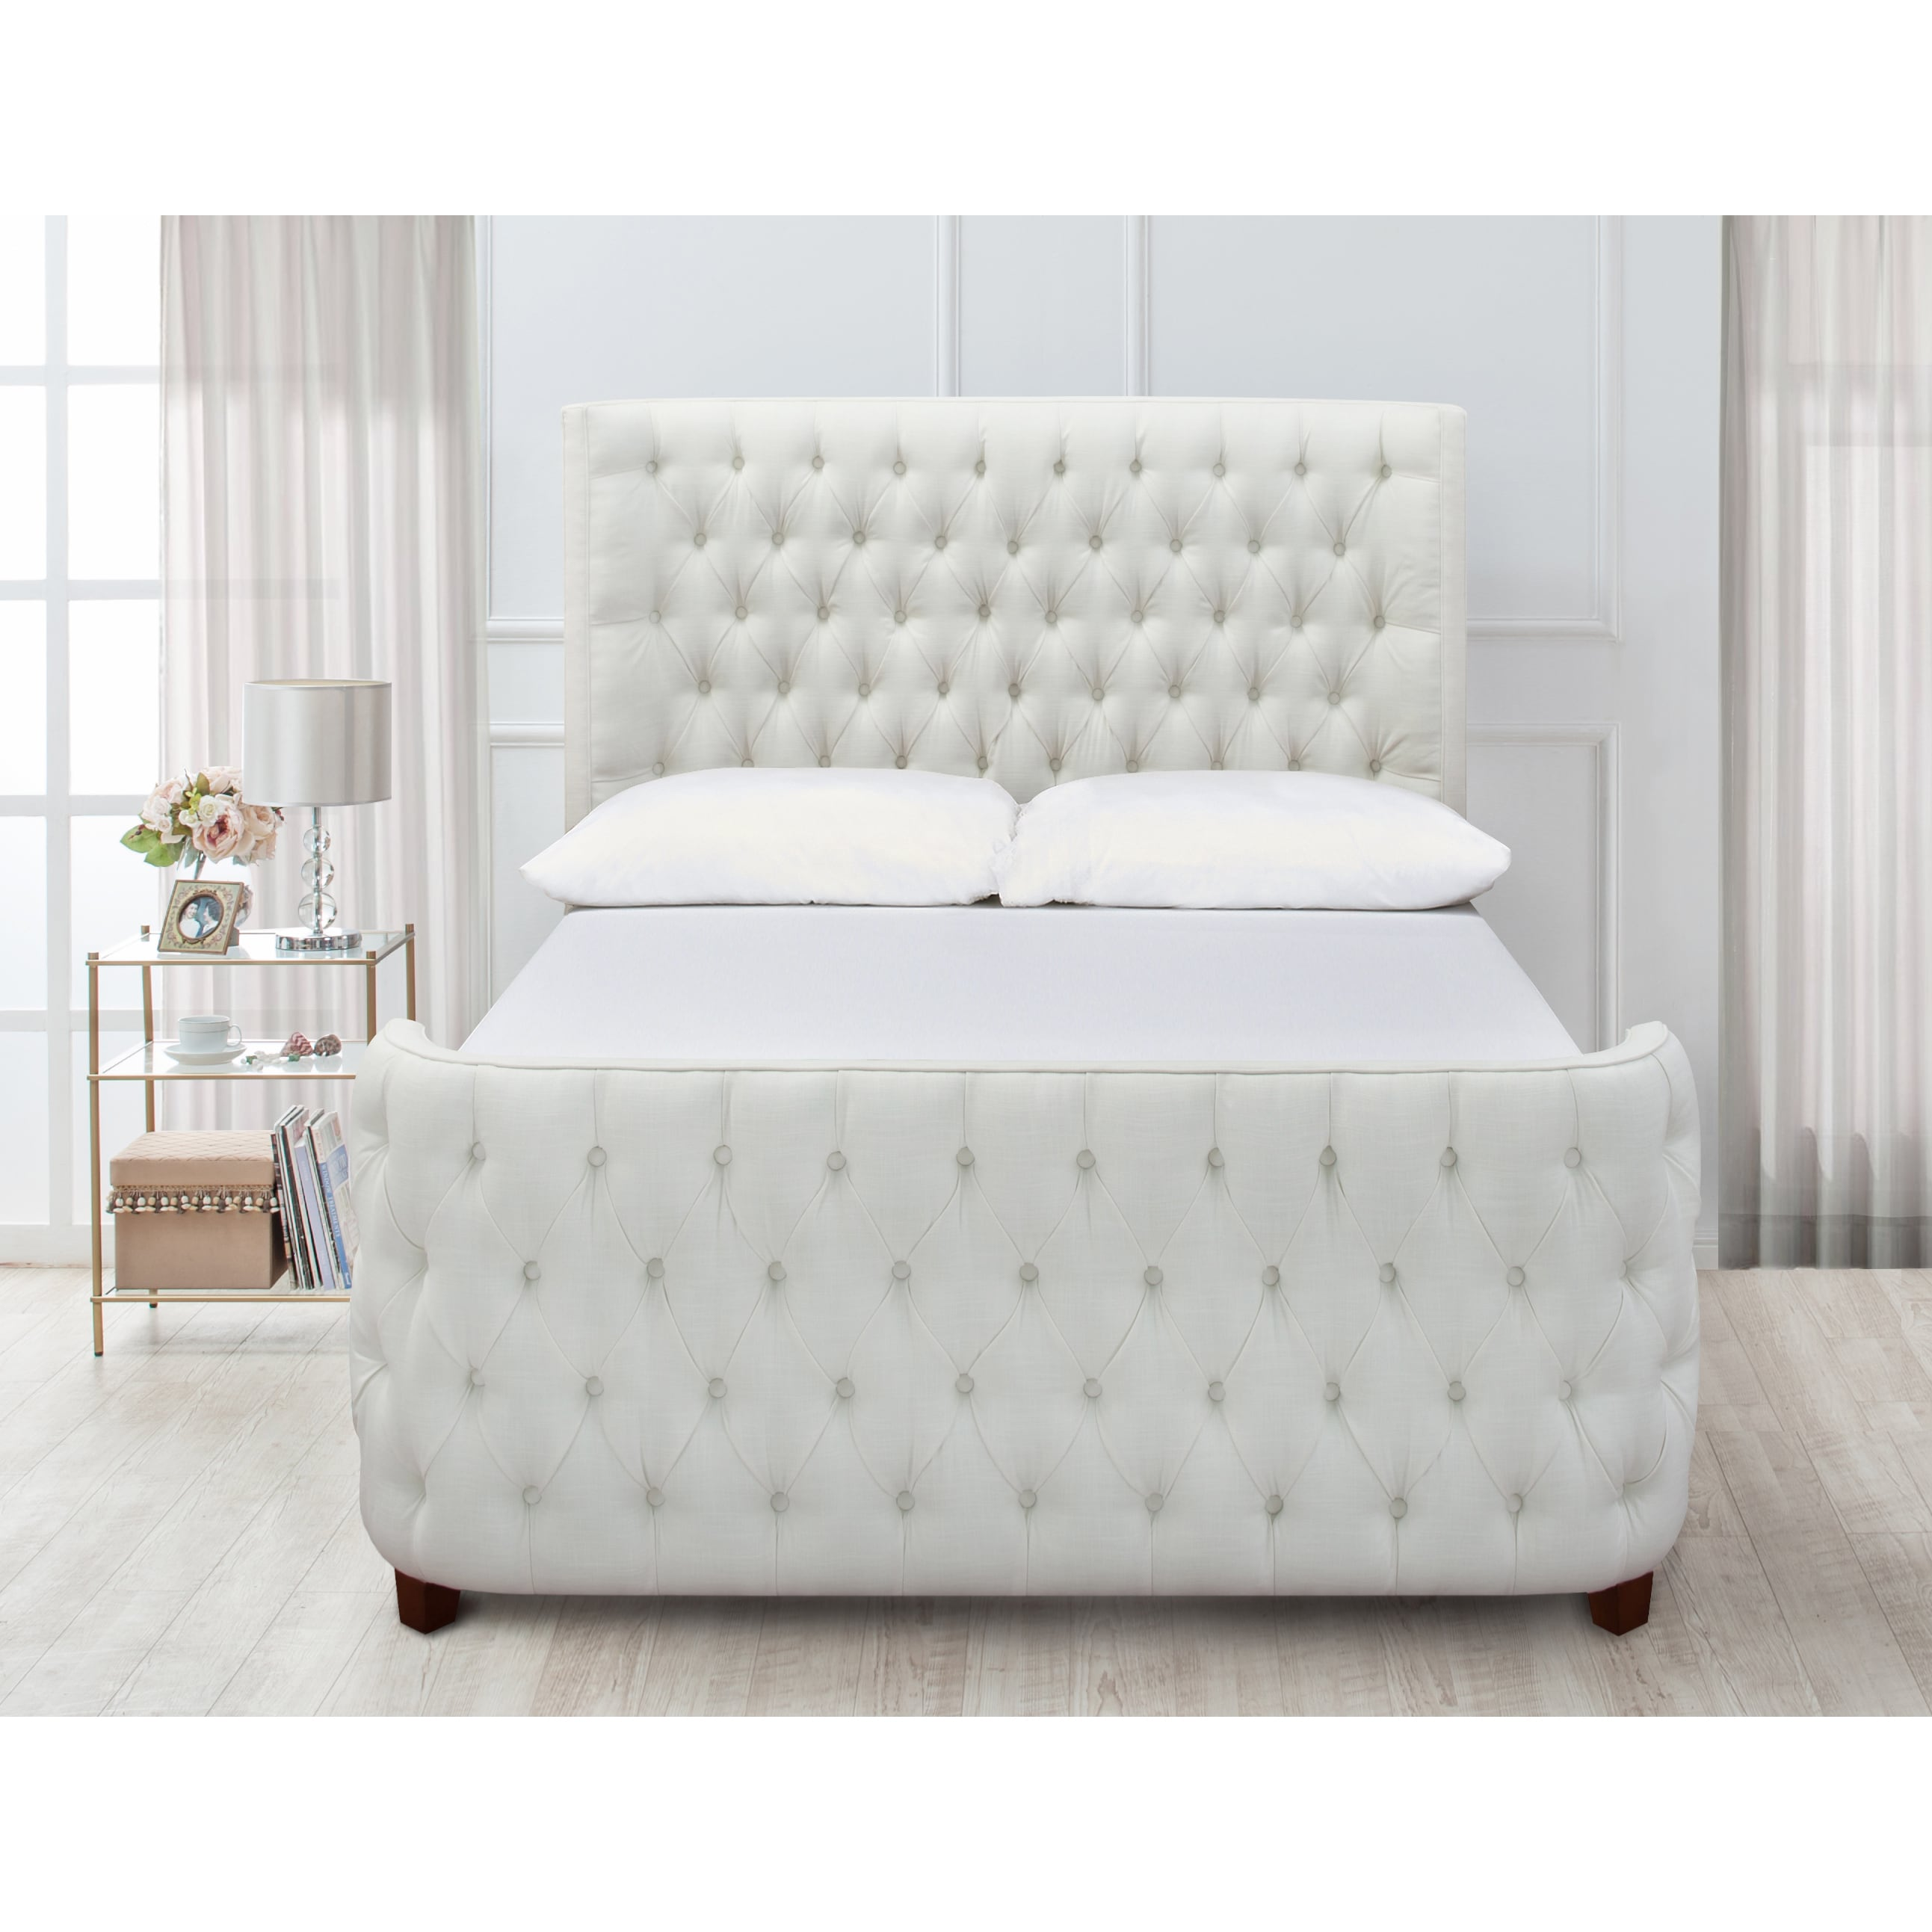 products store ottoman nifty with upholstered headboard divan for napper our bed storage loaf base